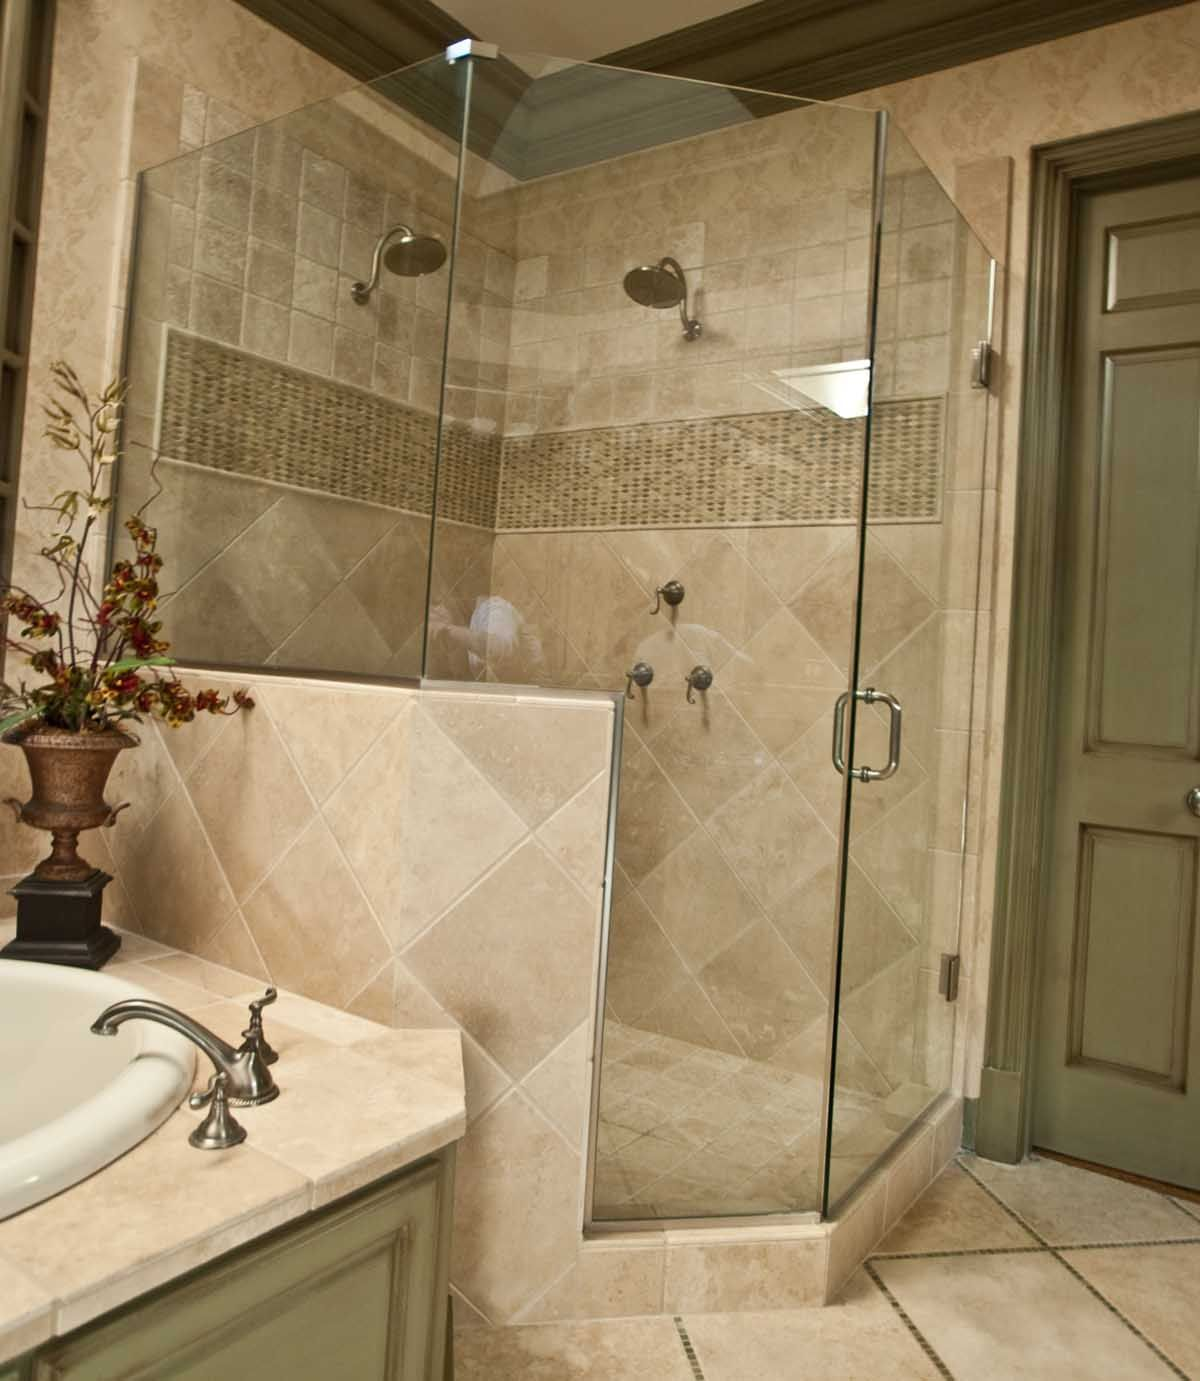 bathroom remodeling ideas bathroom remodeling ideas for small bathrooms from firmones styles - Renovating Bathroom Ideas For Small Bath